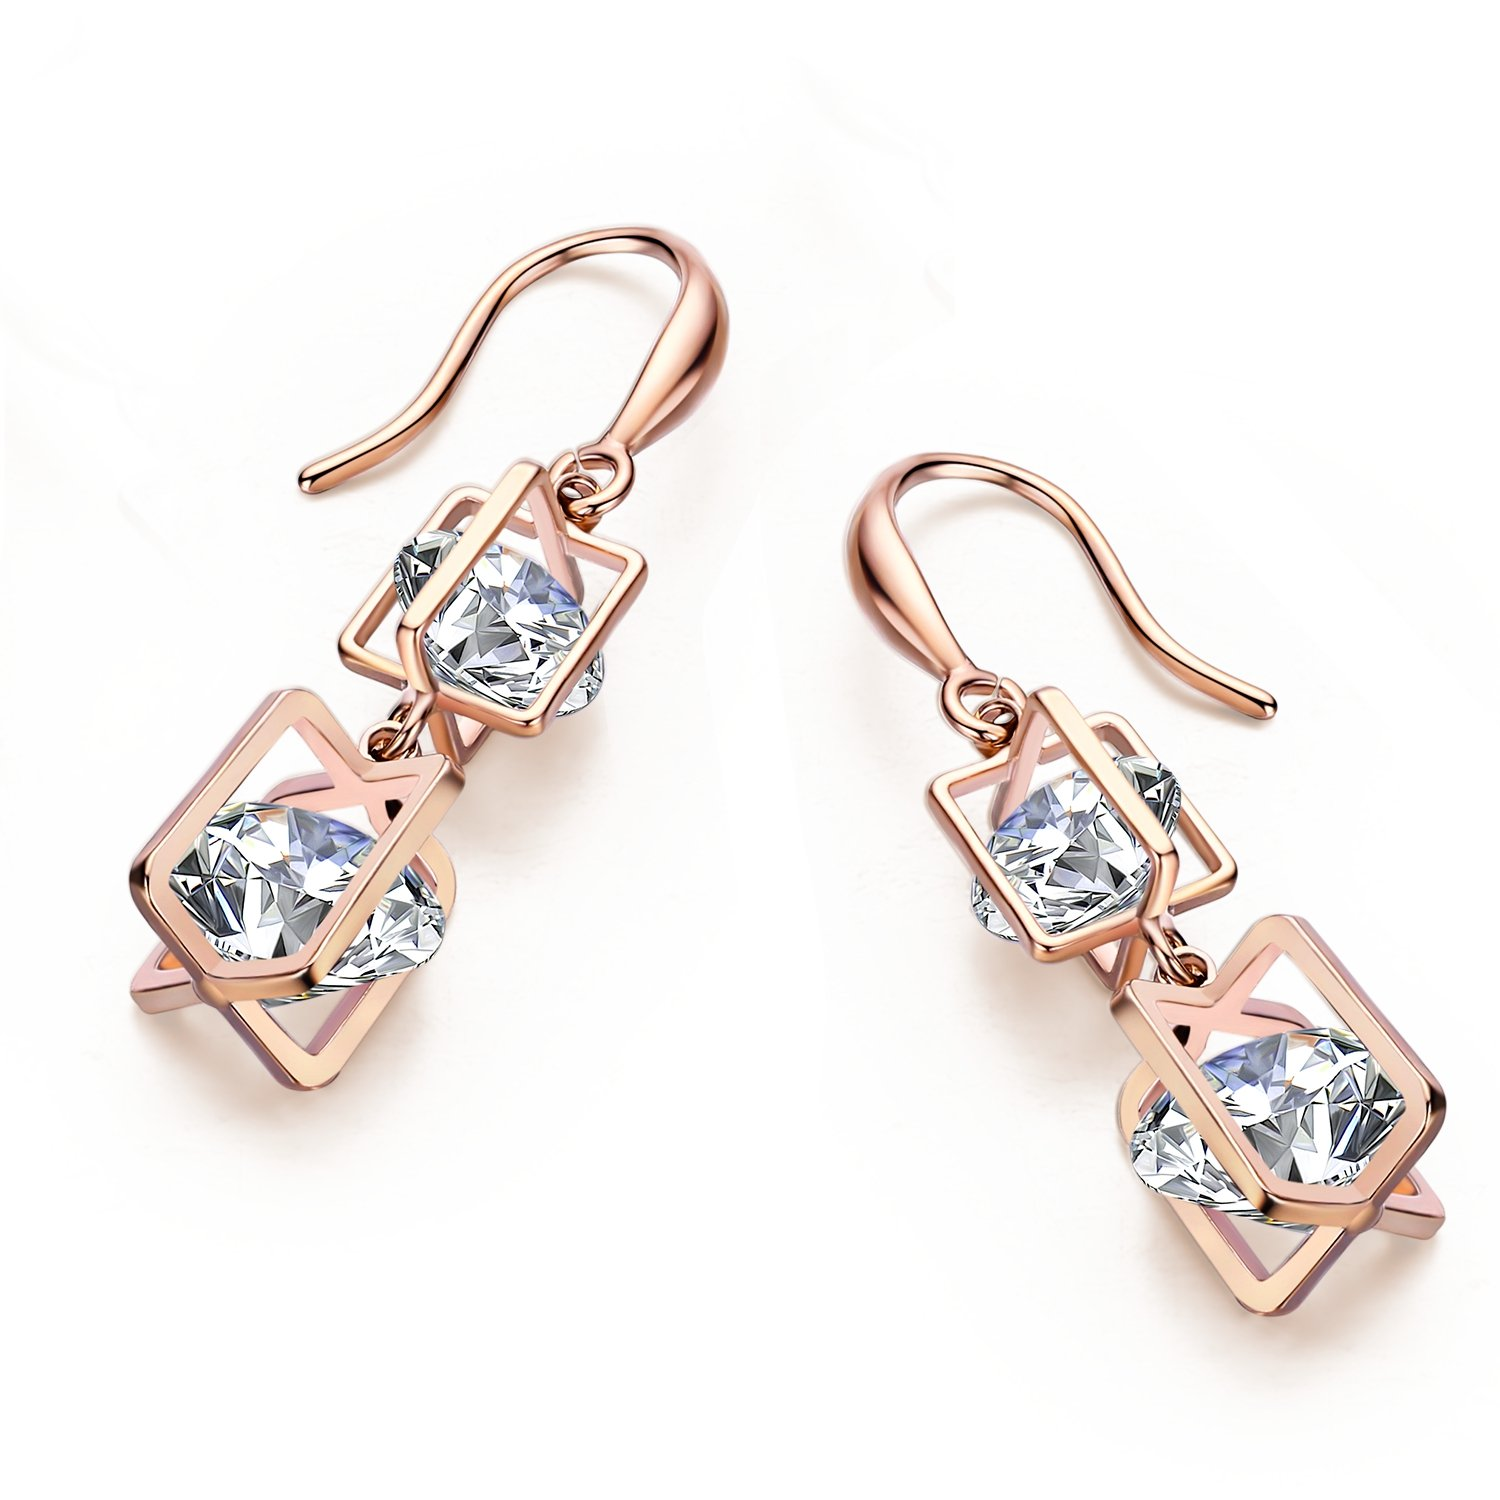 a5cf43d4ba950 SBLING Platinum Plated or 18K Rose Gold Plated Cubic Zirconia Drop  Earrings(9.5cttw)